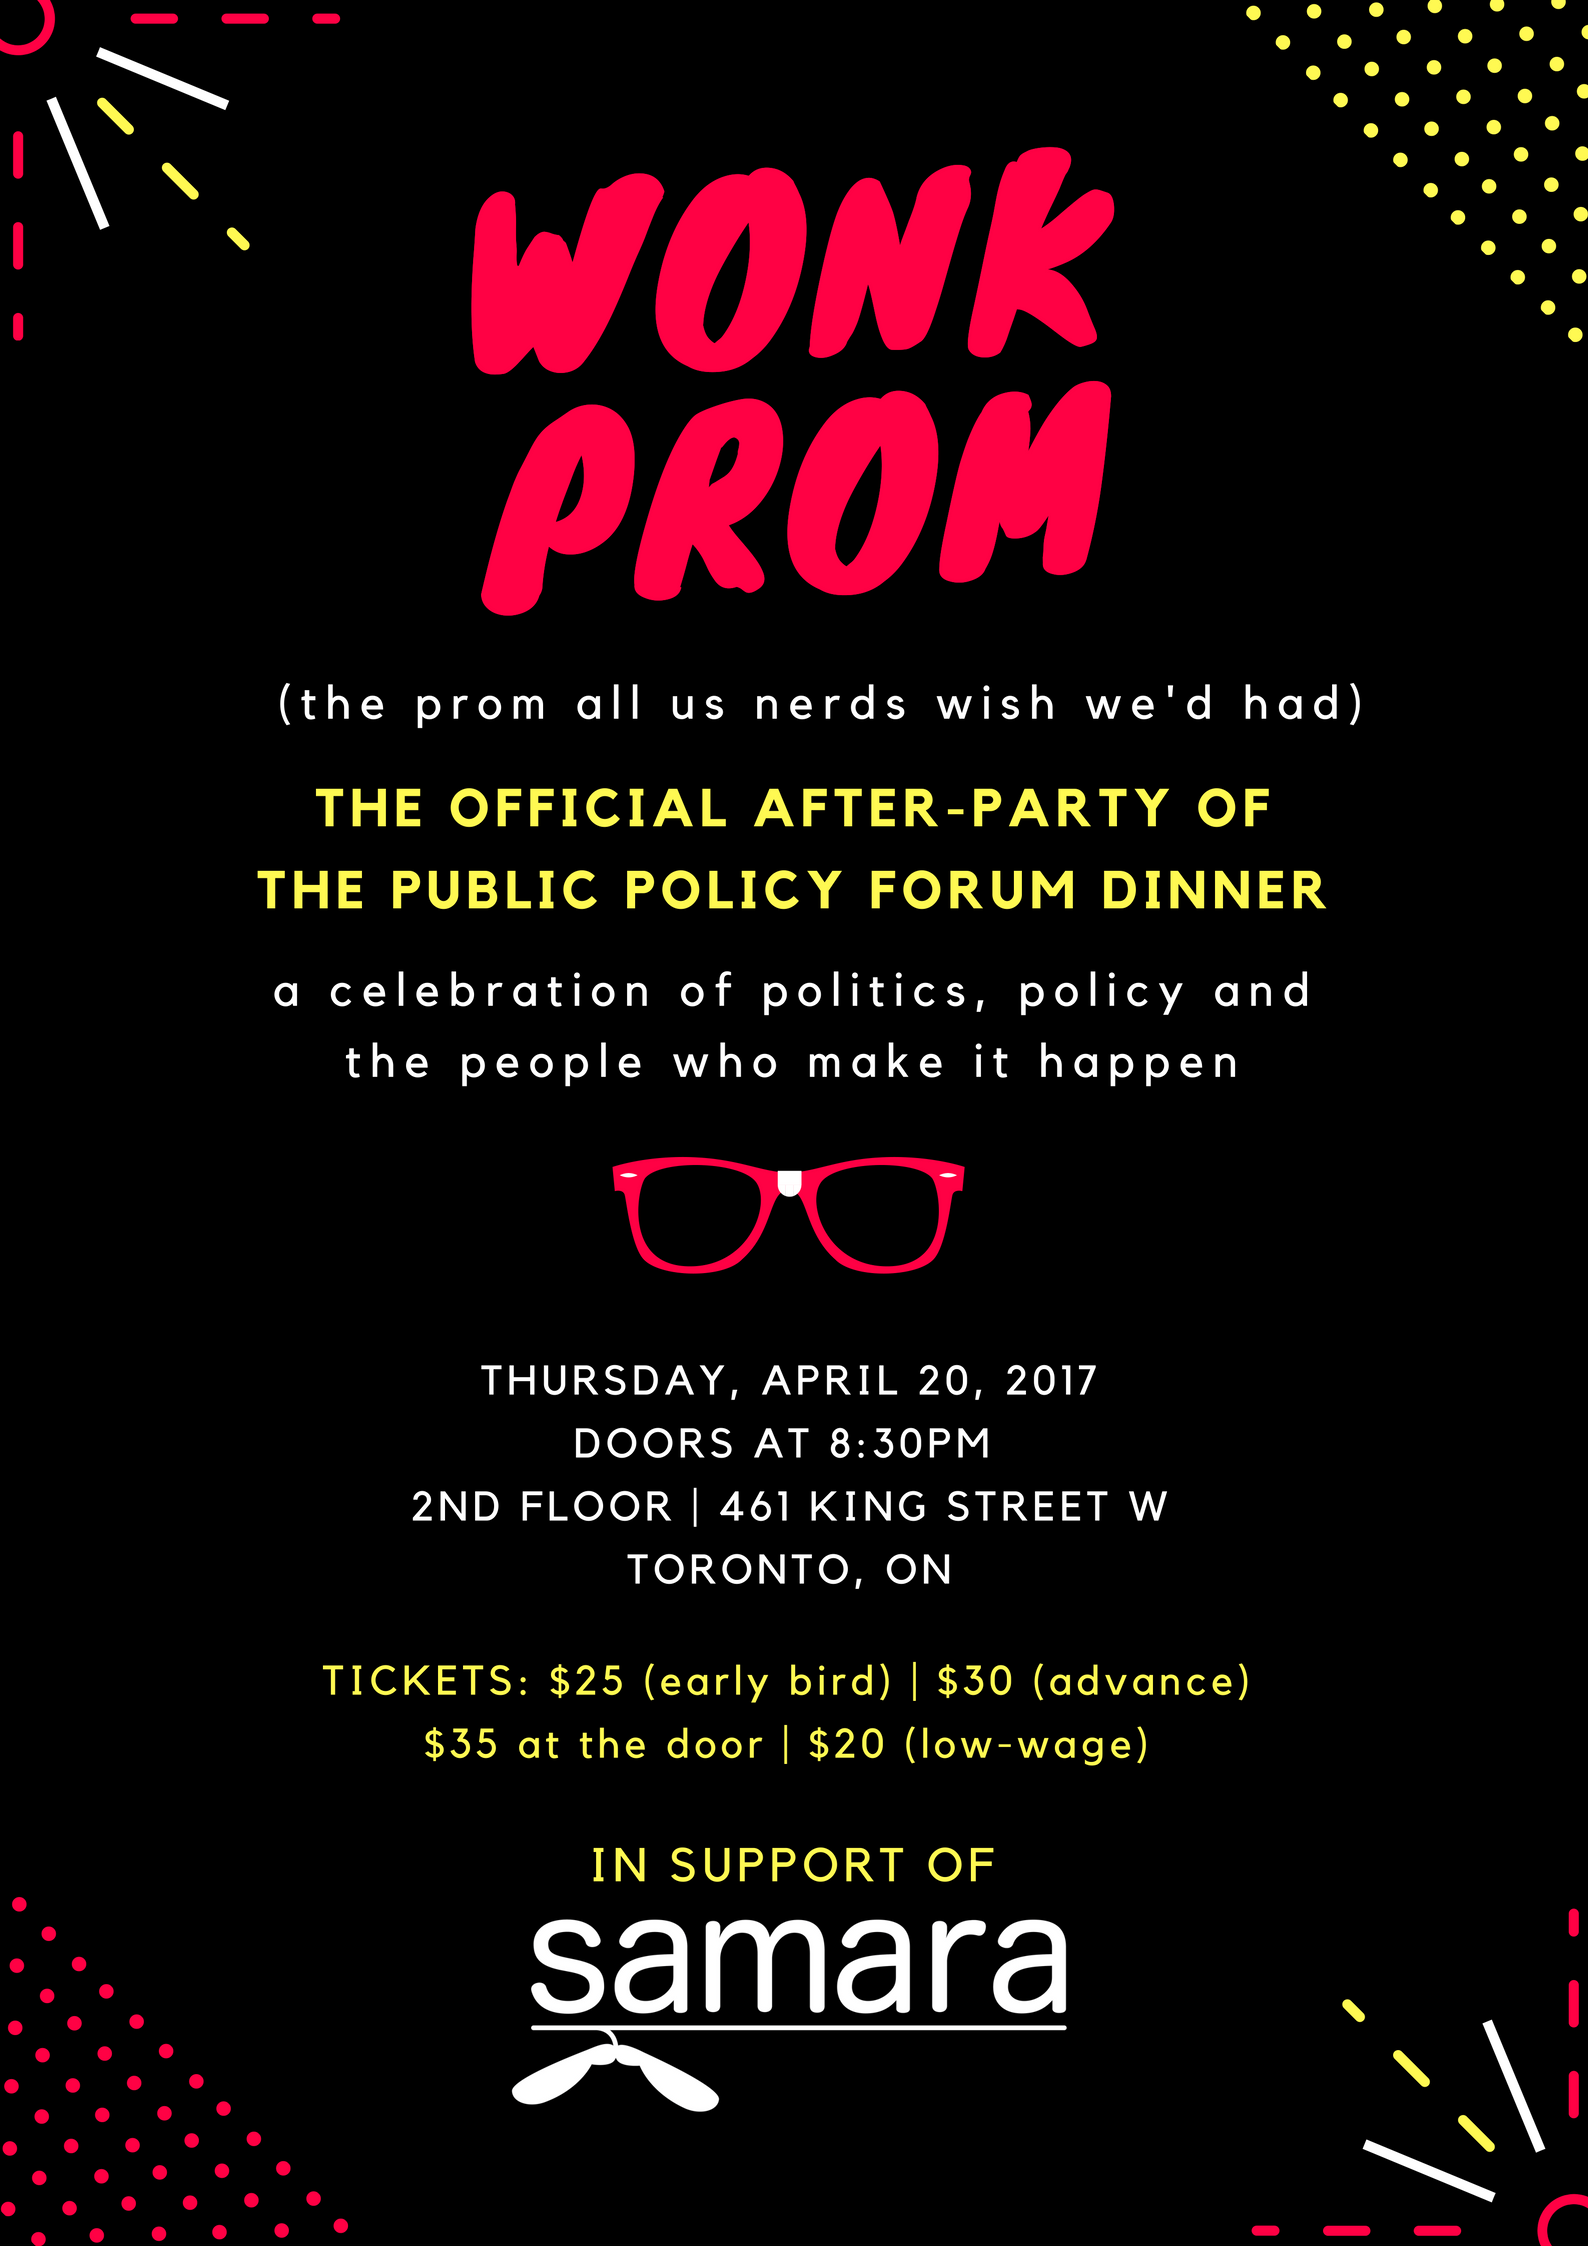 Wonk_Prom_poster.png